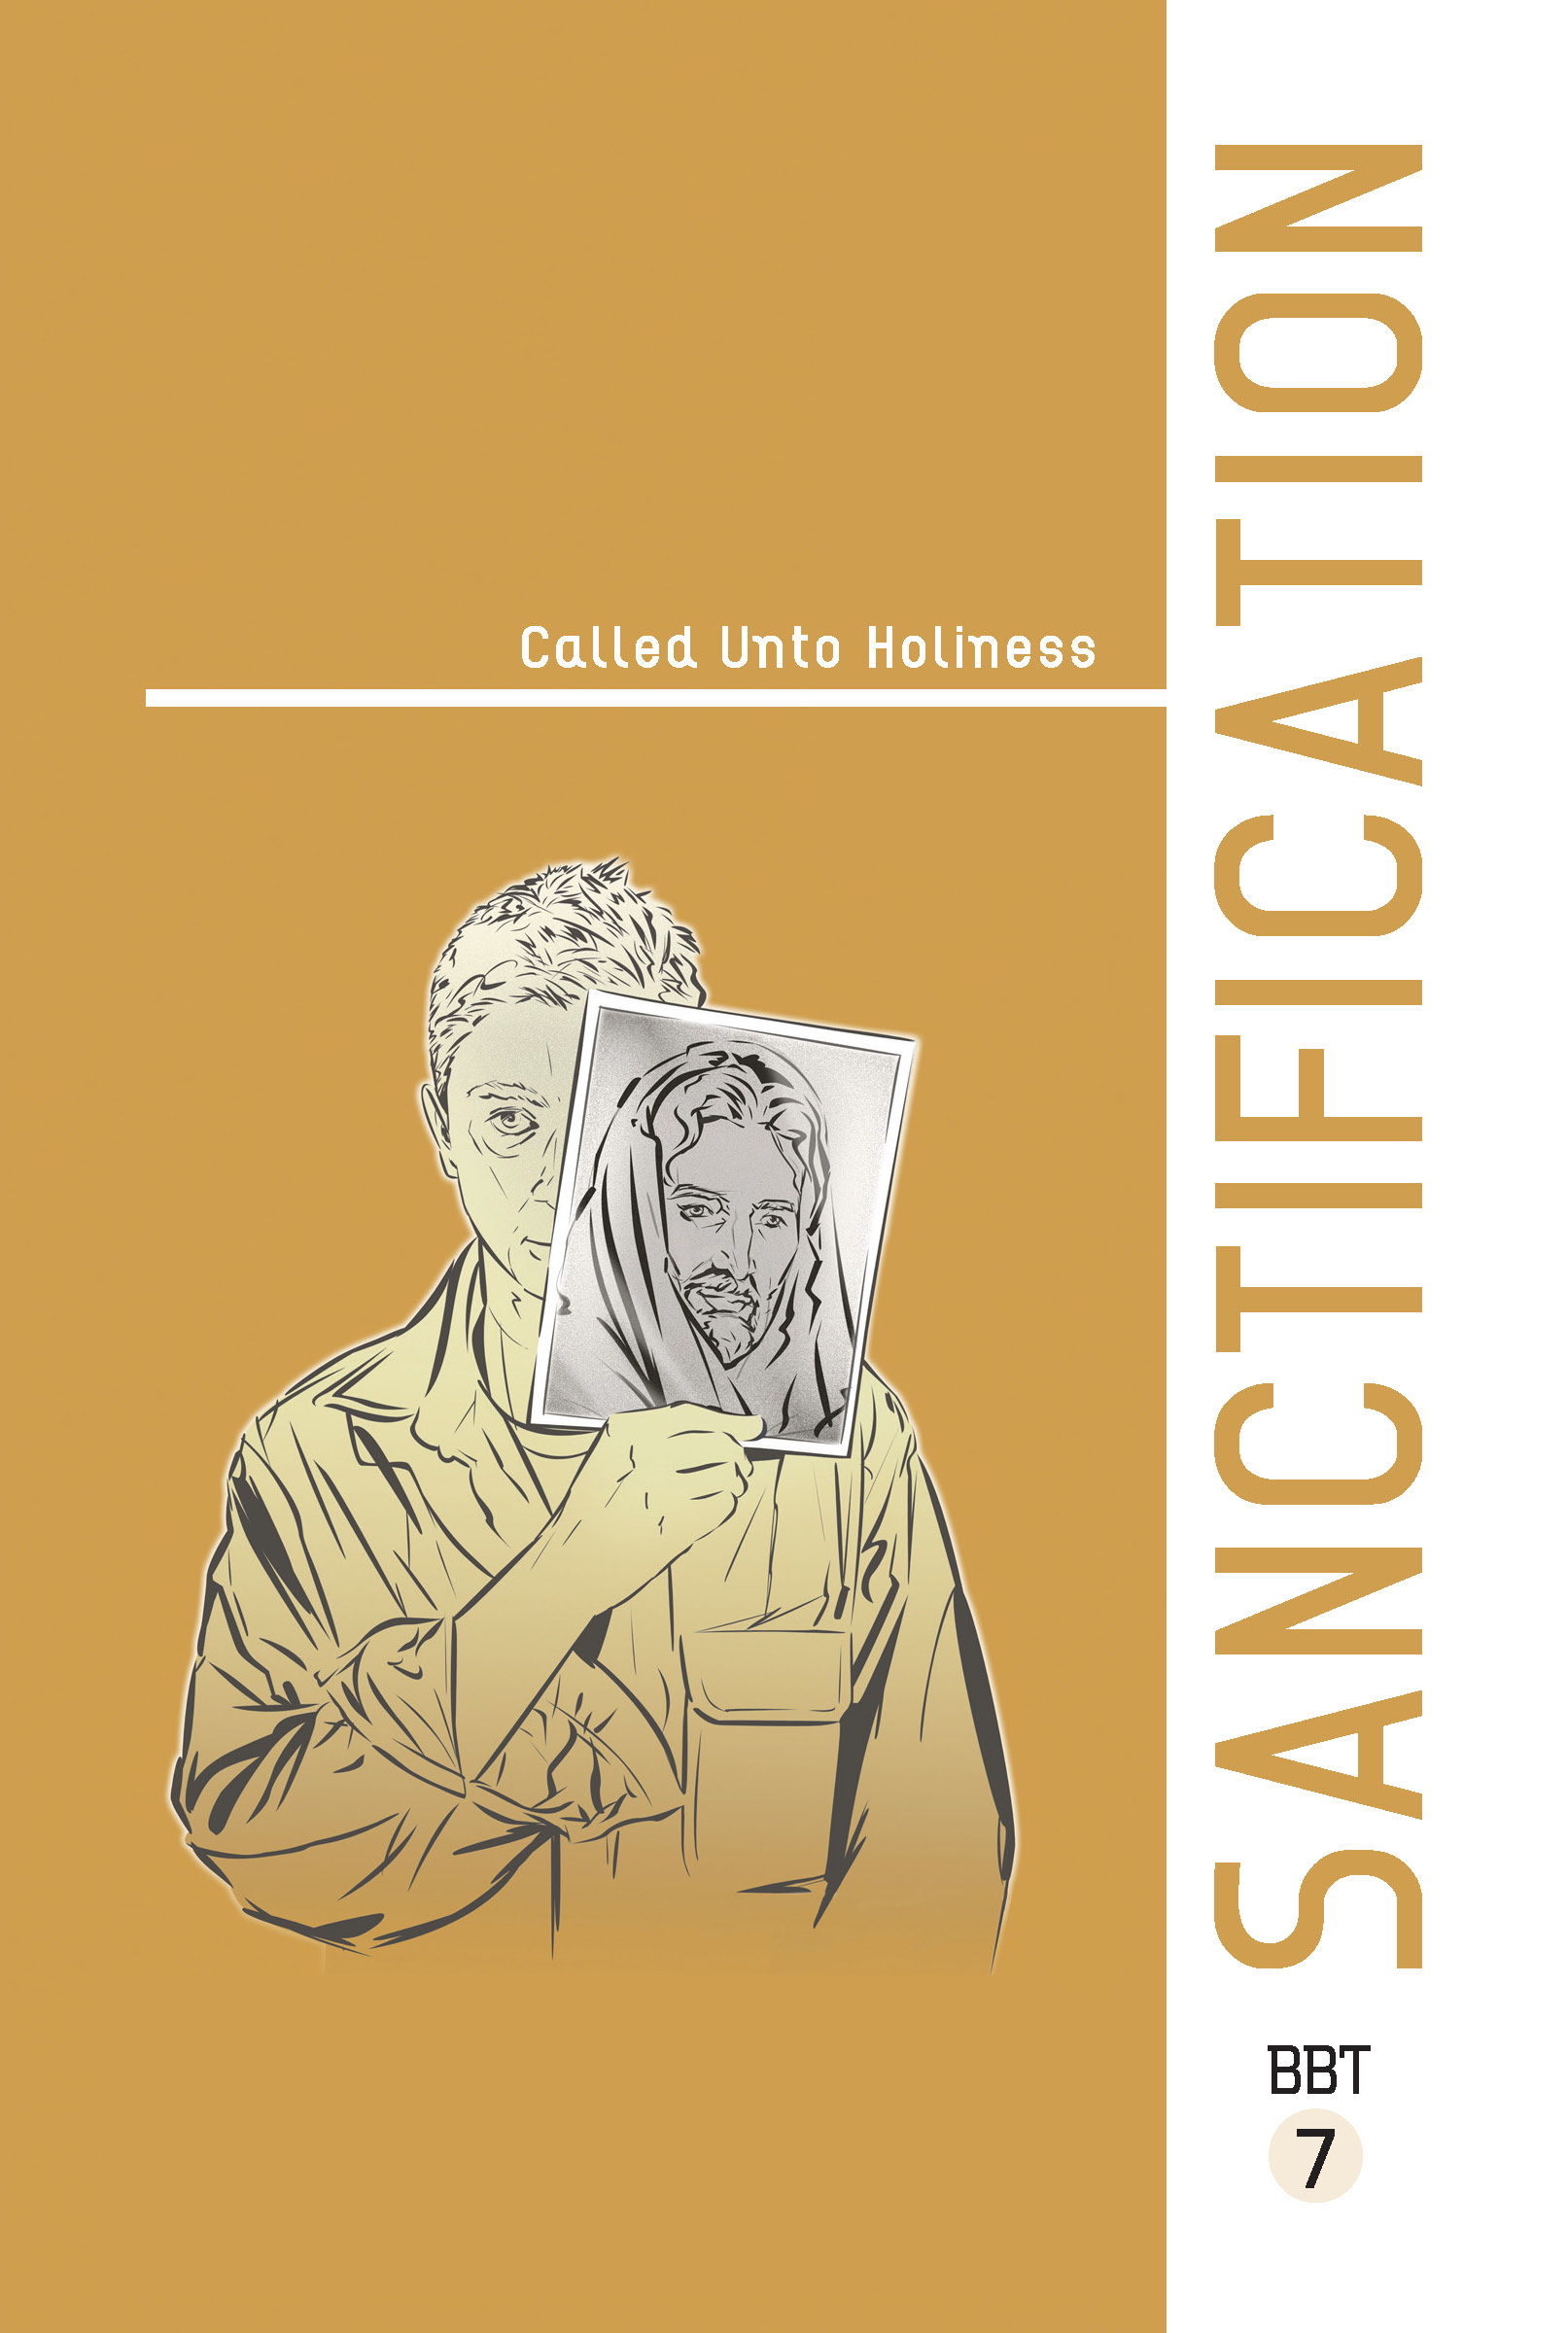 Lesson 7 - SANCTIFICATION: Called Unto Holiness